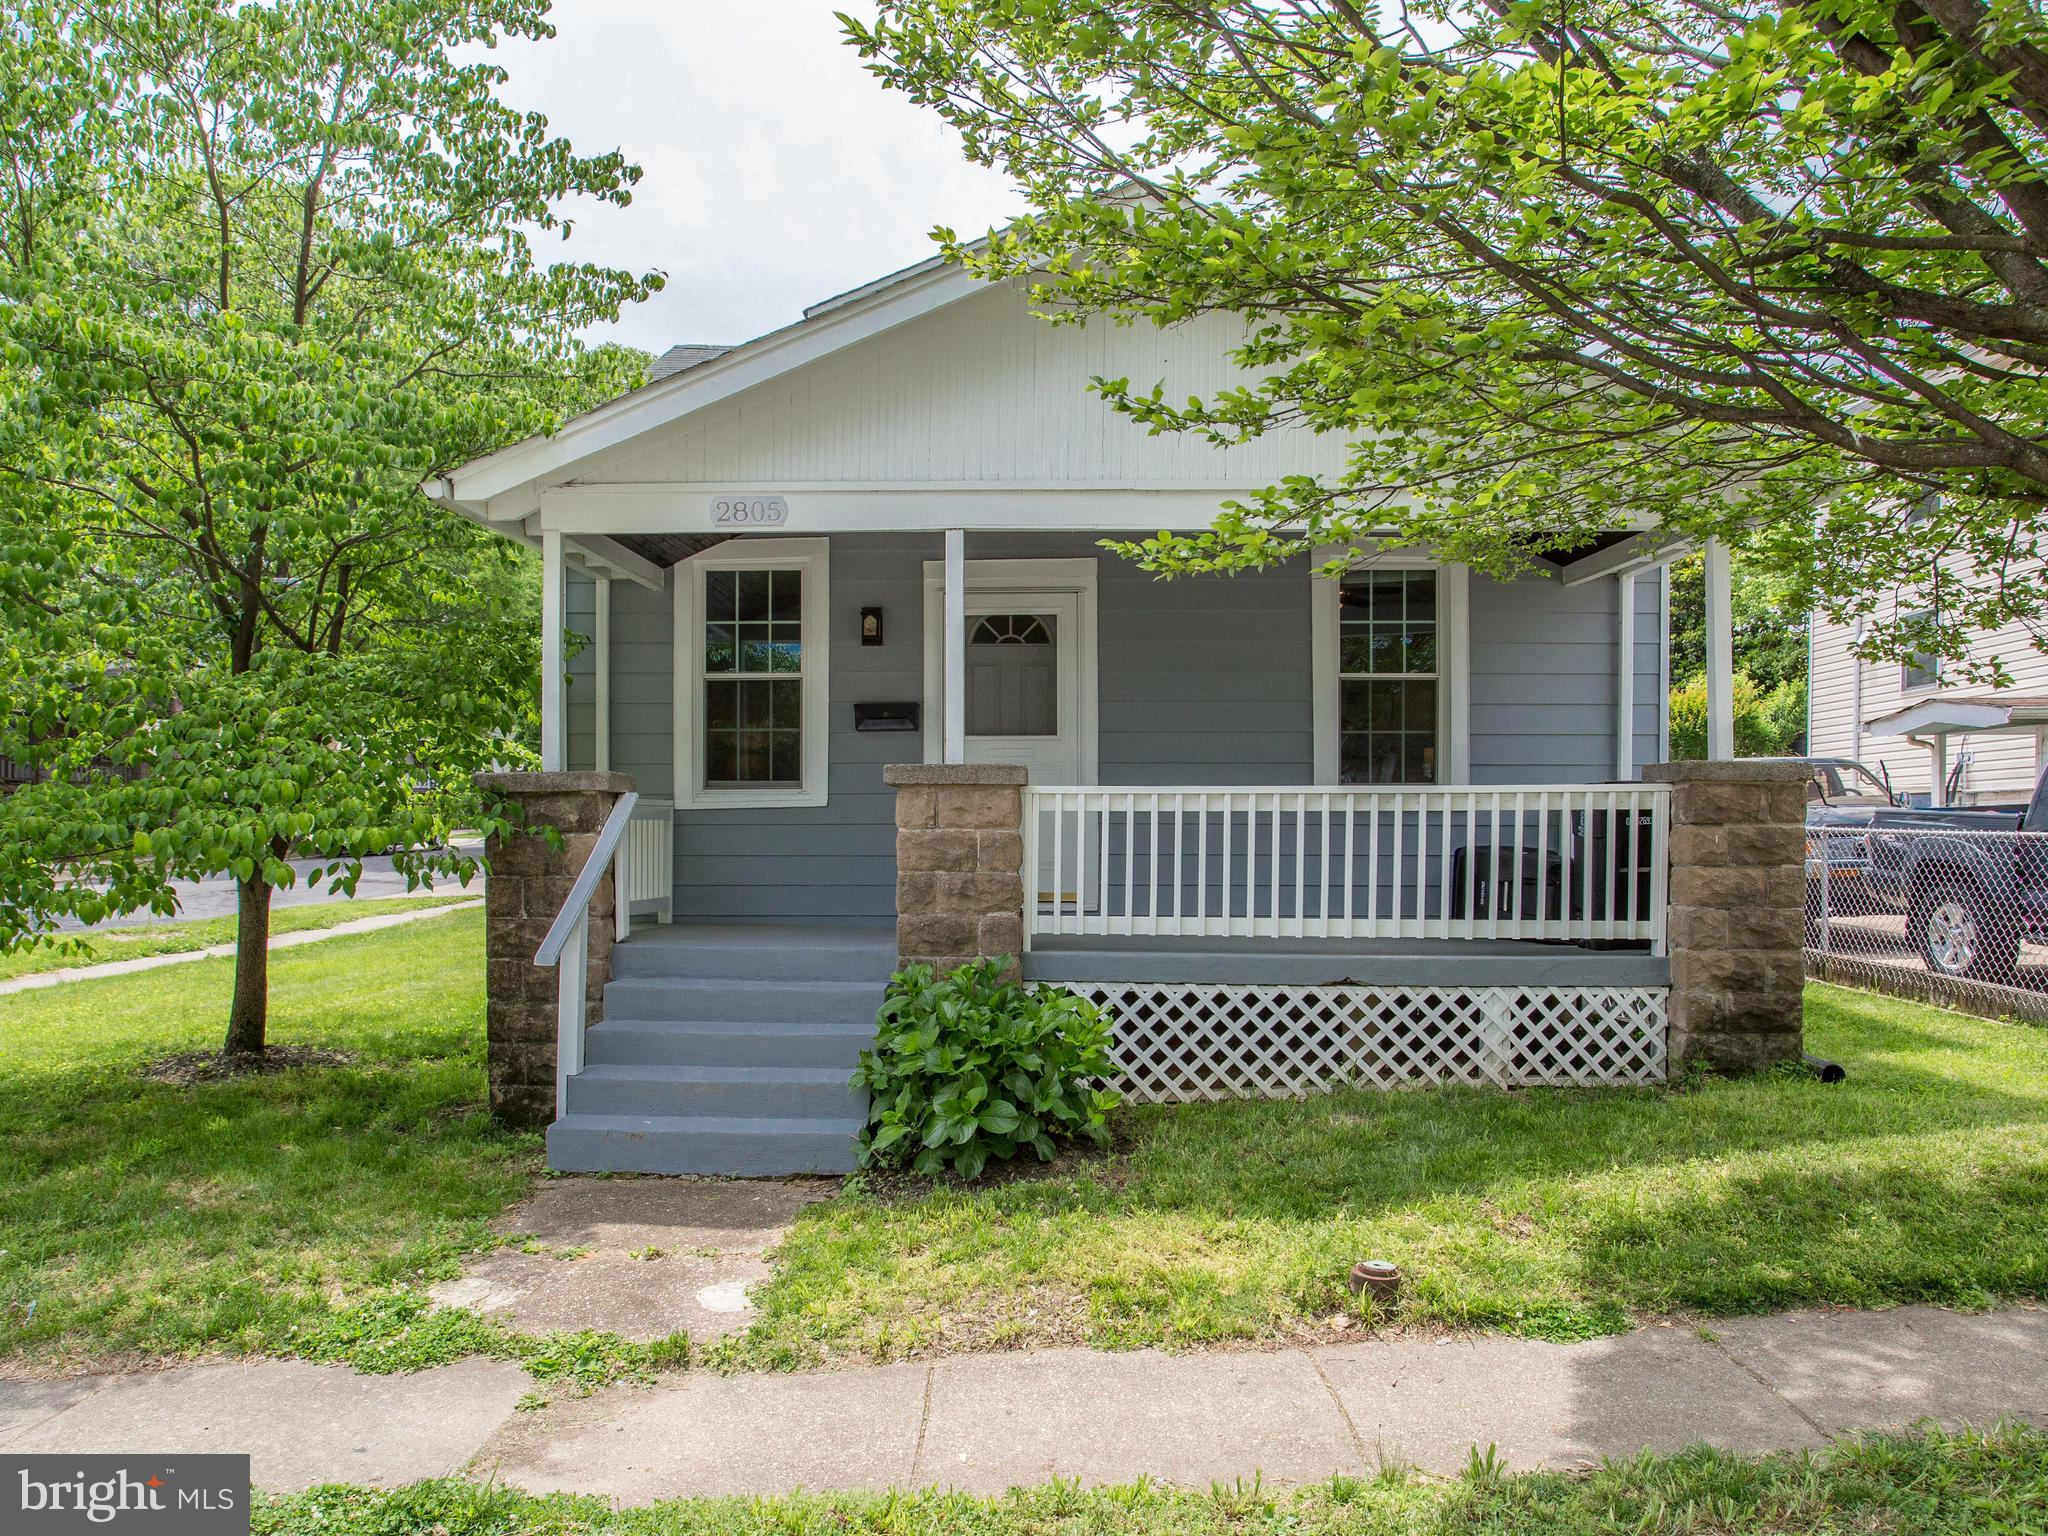 2805 UPSHUR STREET, MOUNT RAINIER, MD 20712